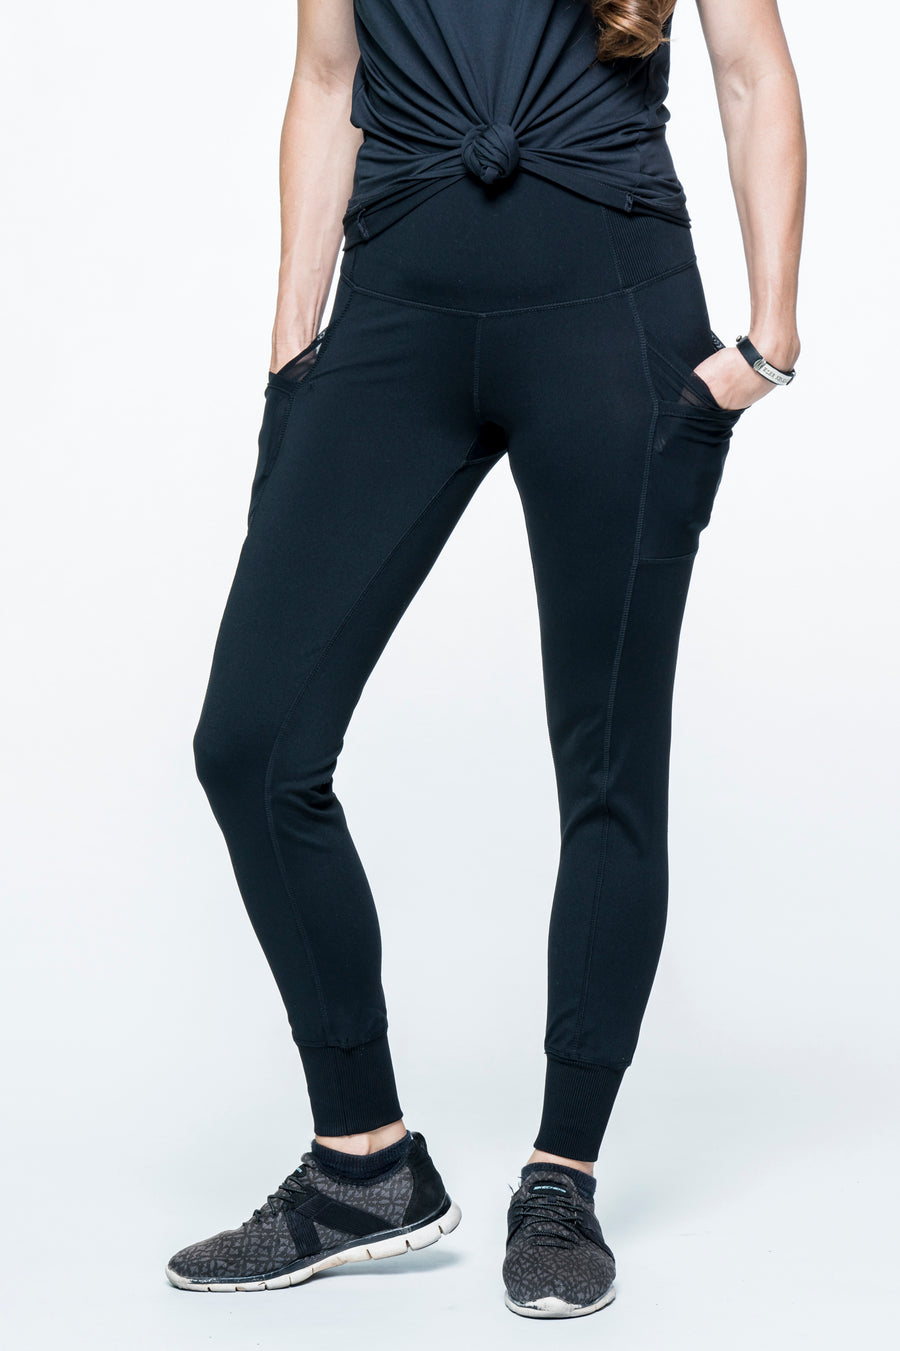 K!ck Fear Legging